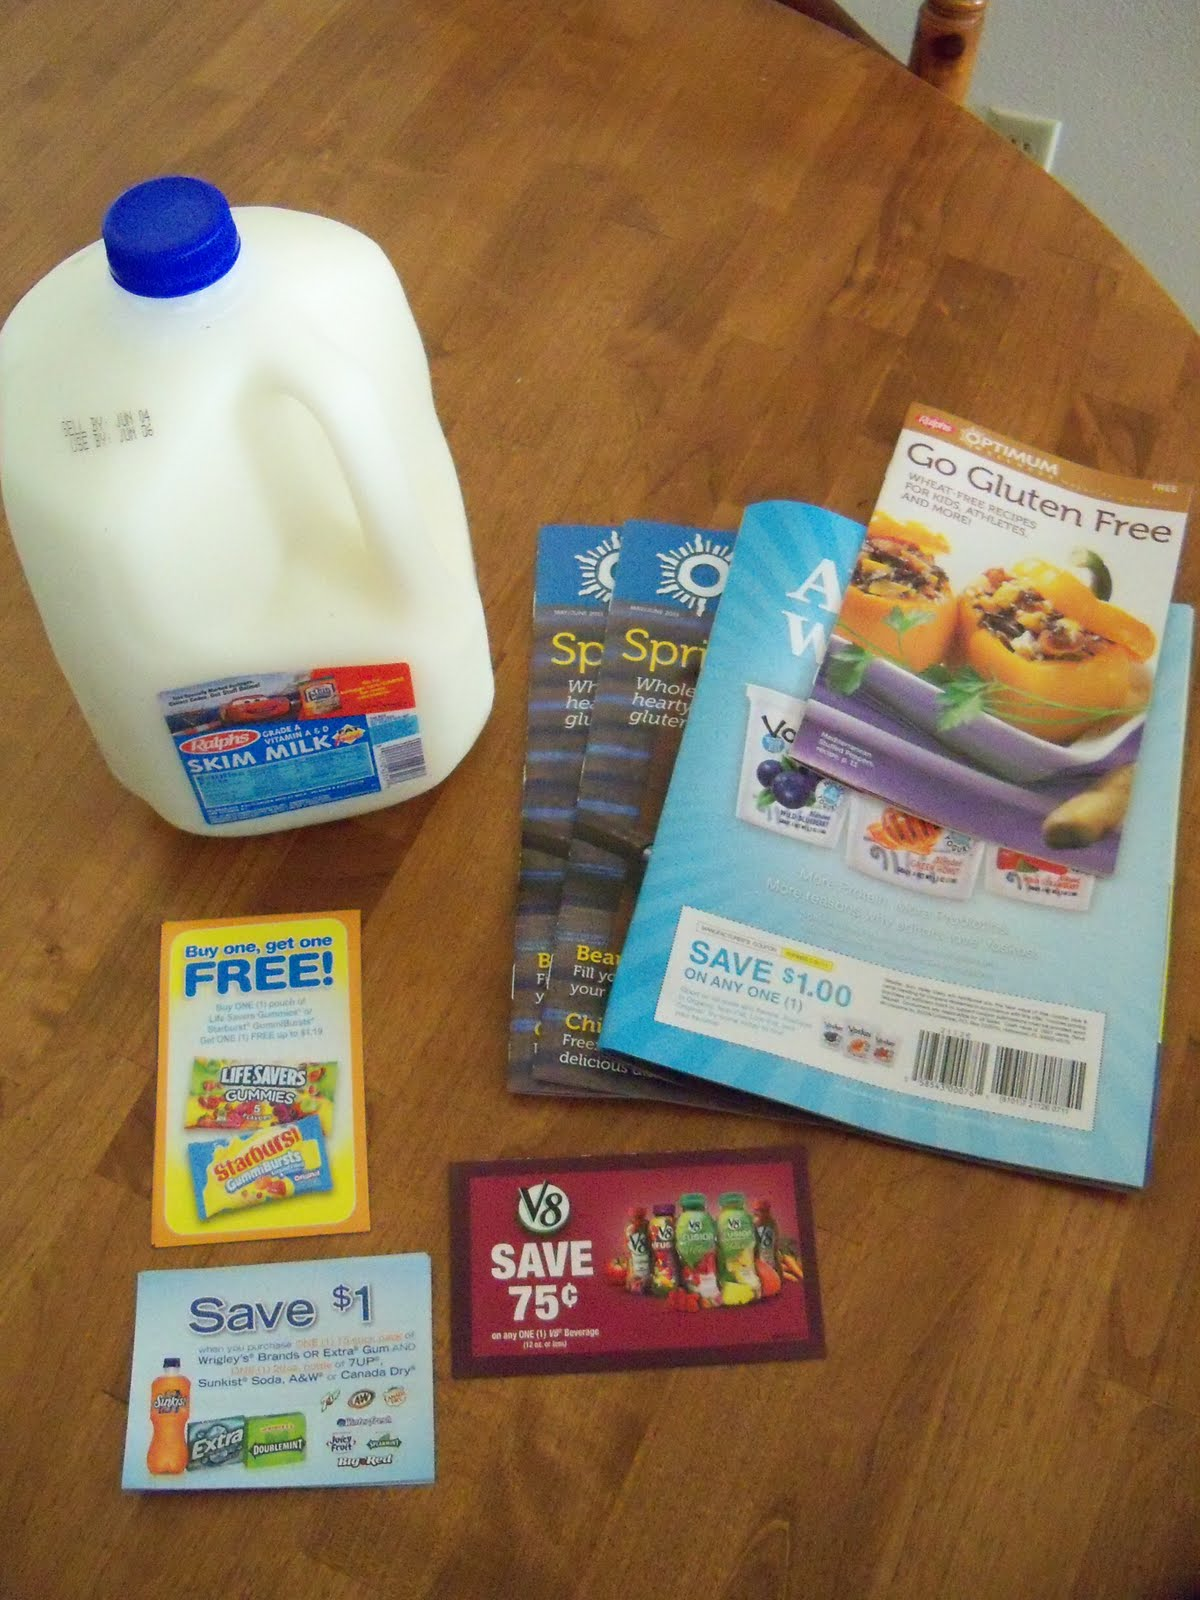 image about Ralphs Printable Coupons titled Cost savings Chatter: Circle K Ralphs #2 - Expected Milk!!